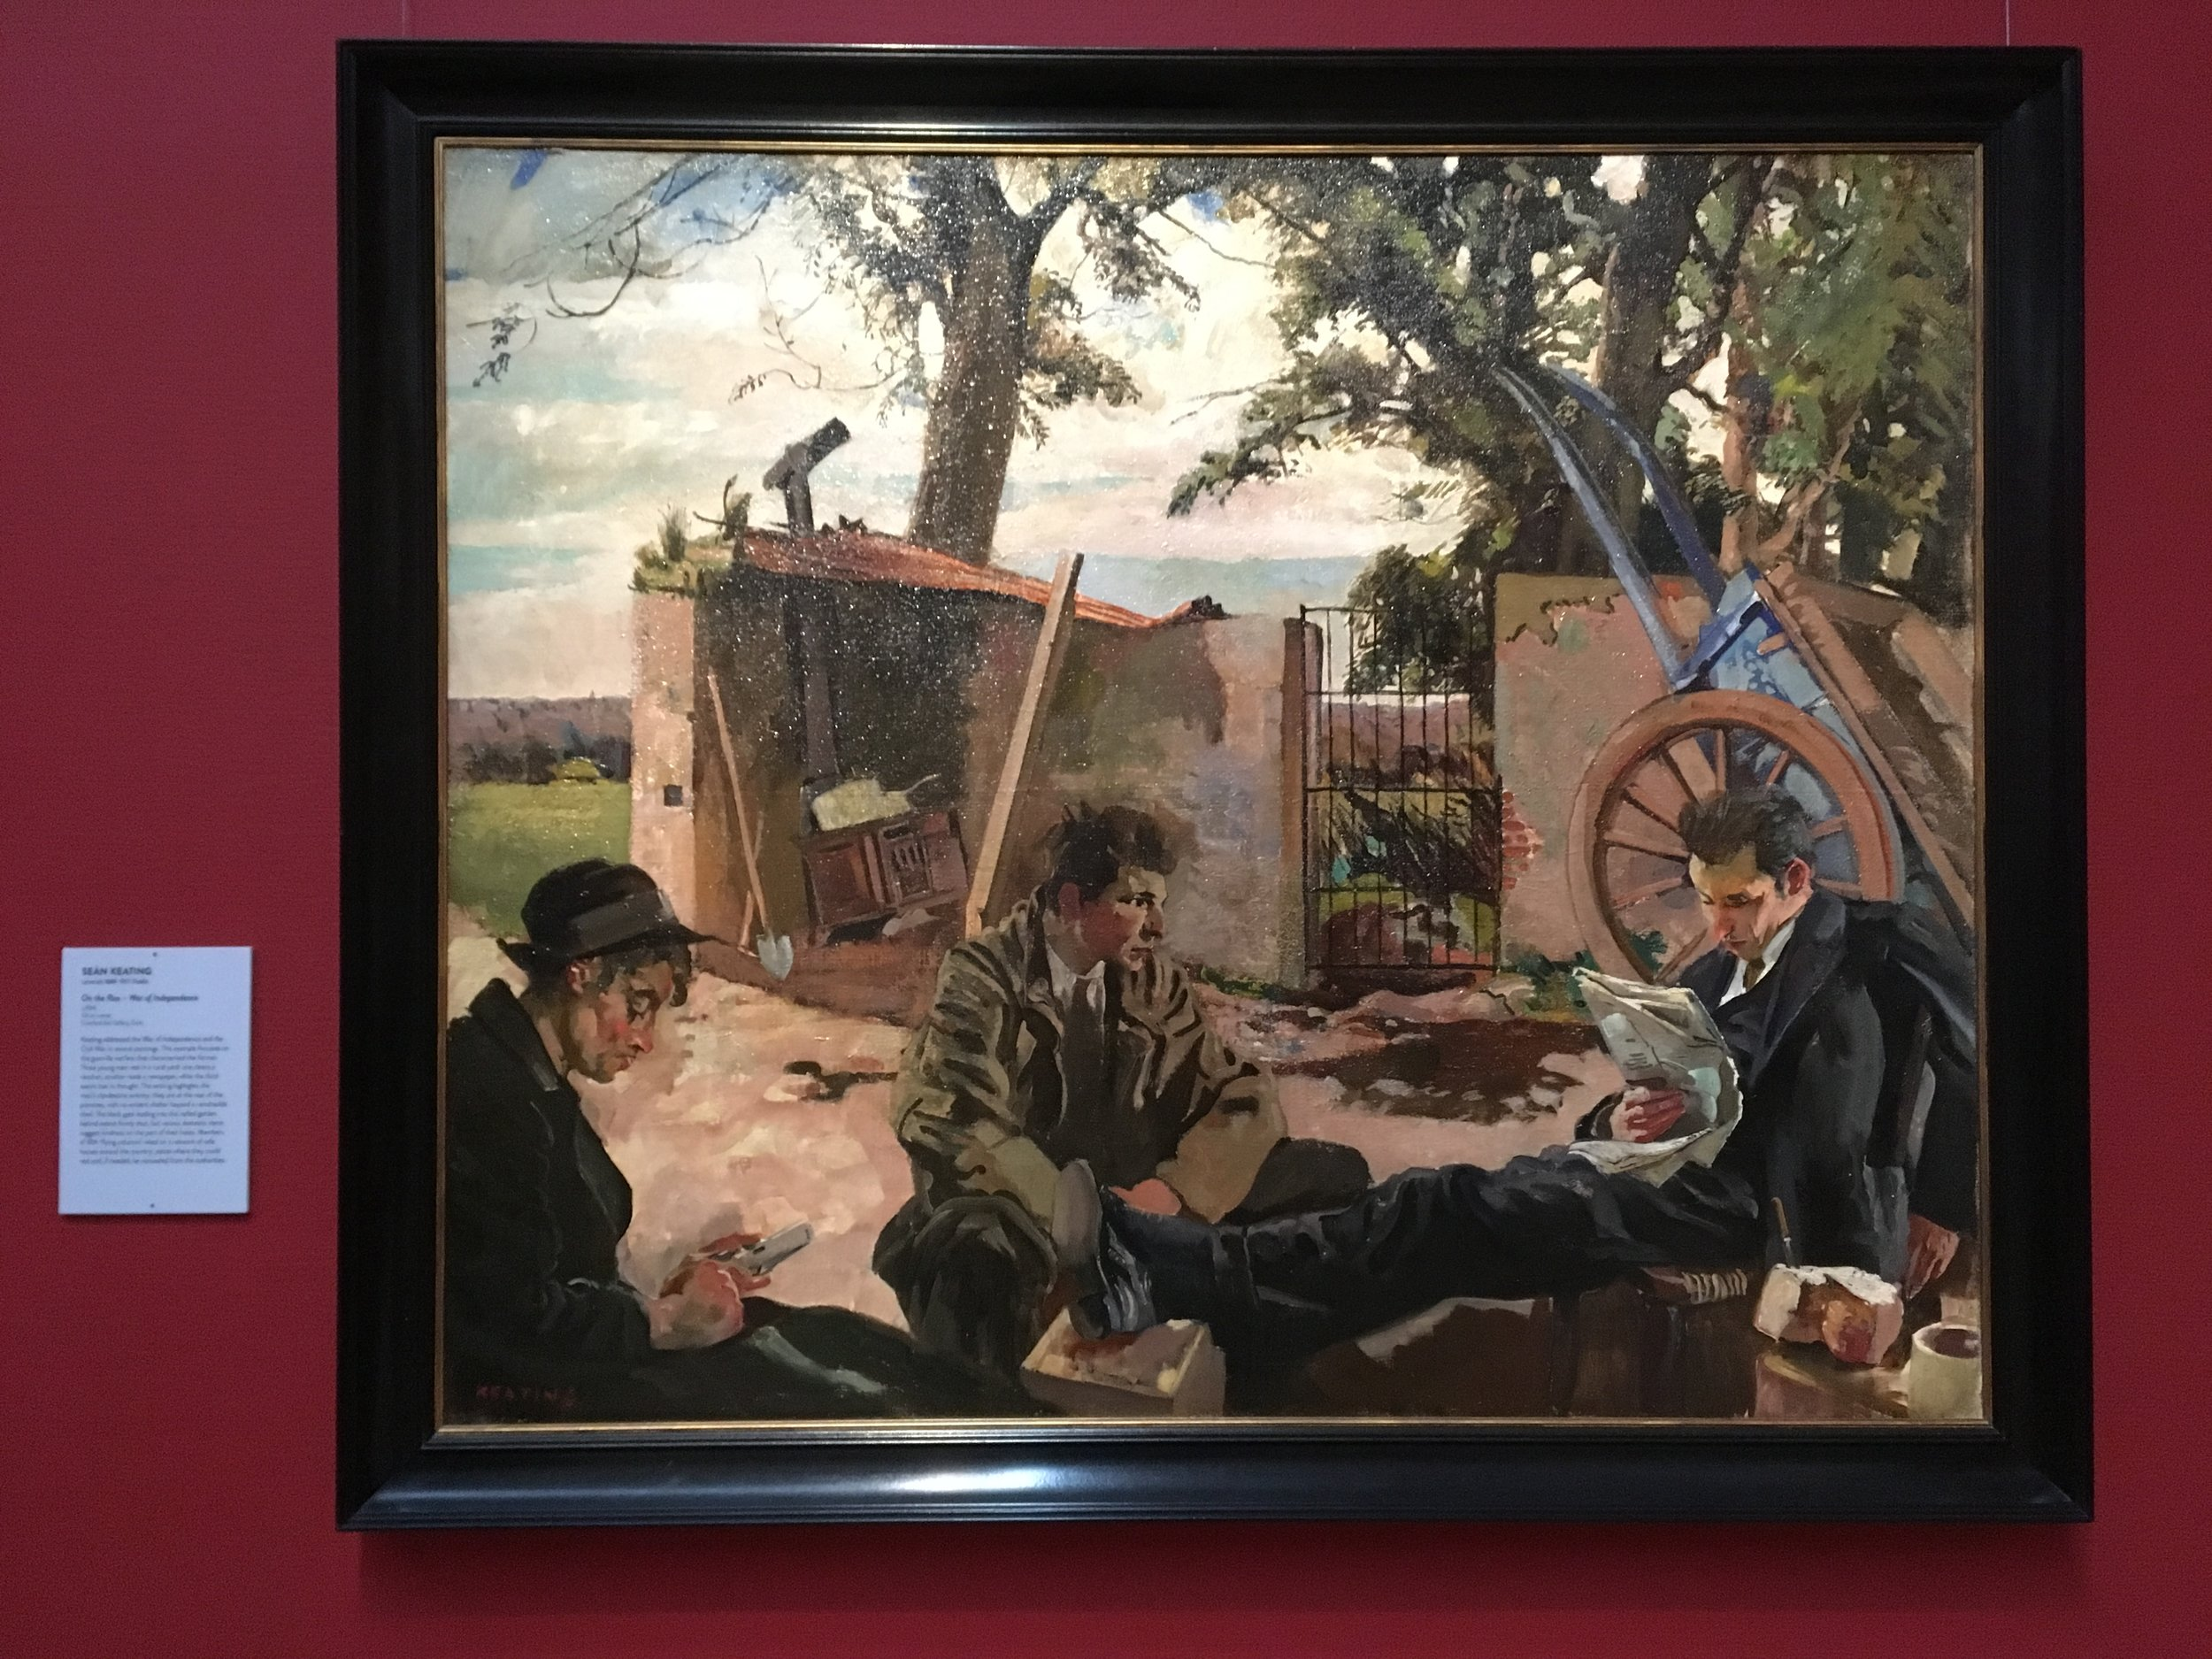 Sean Keating, On the Run - War of Independence, c. 1924, Oil on canvas, Crawford Art Gallery, Cork